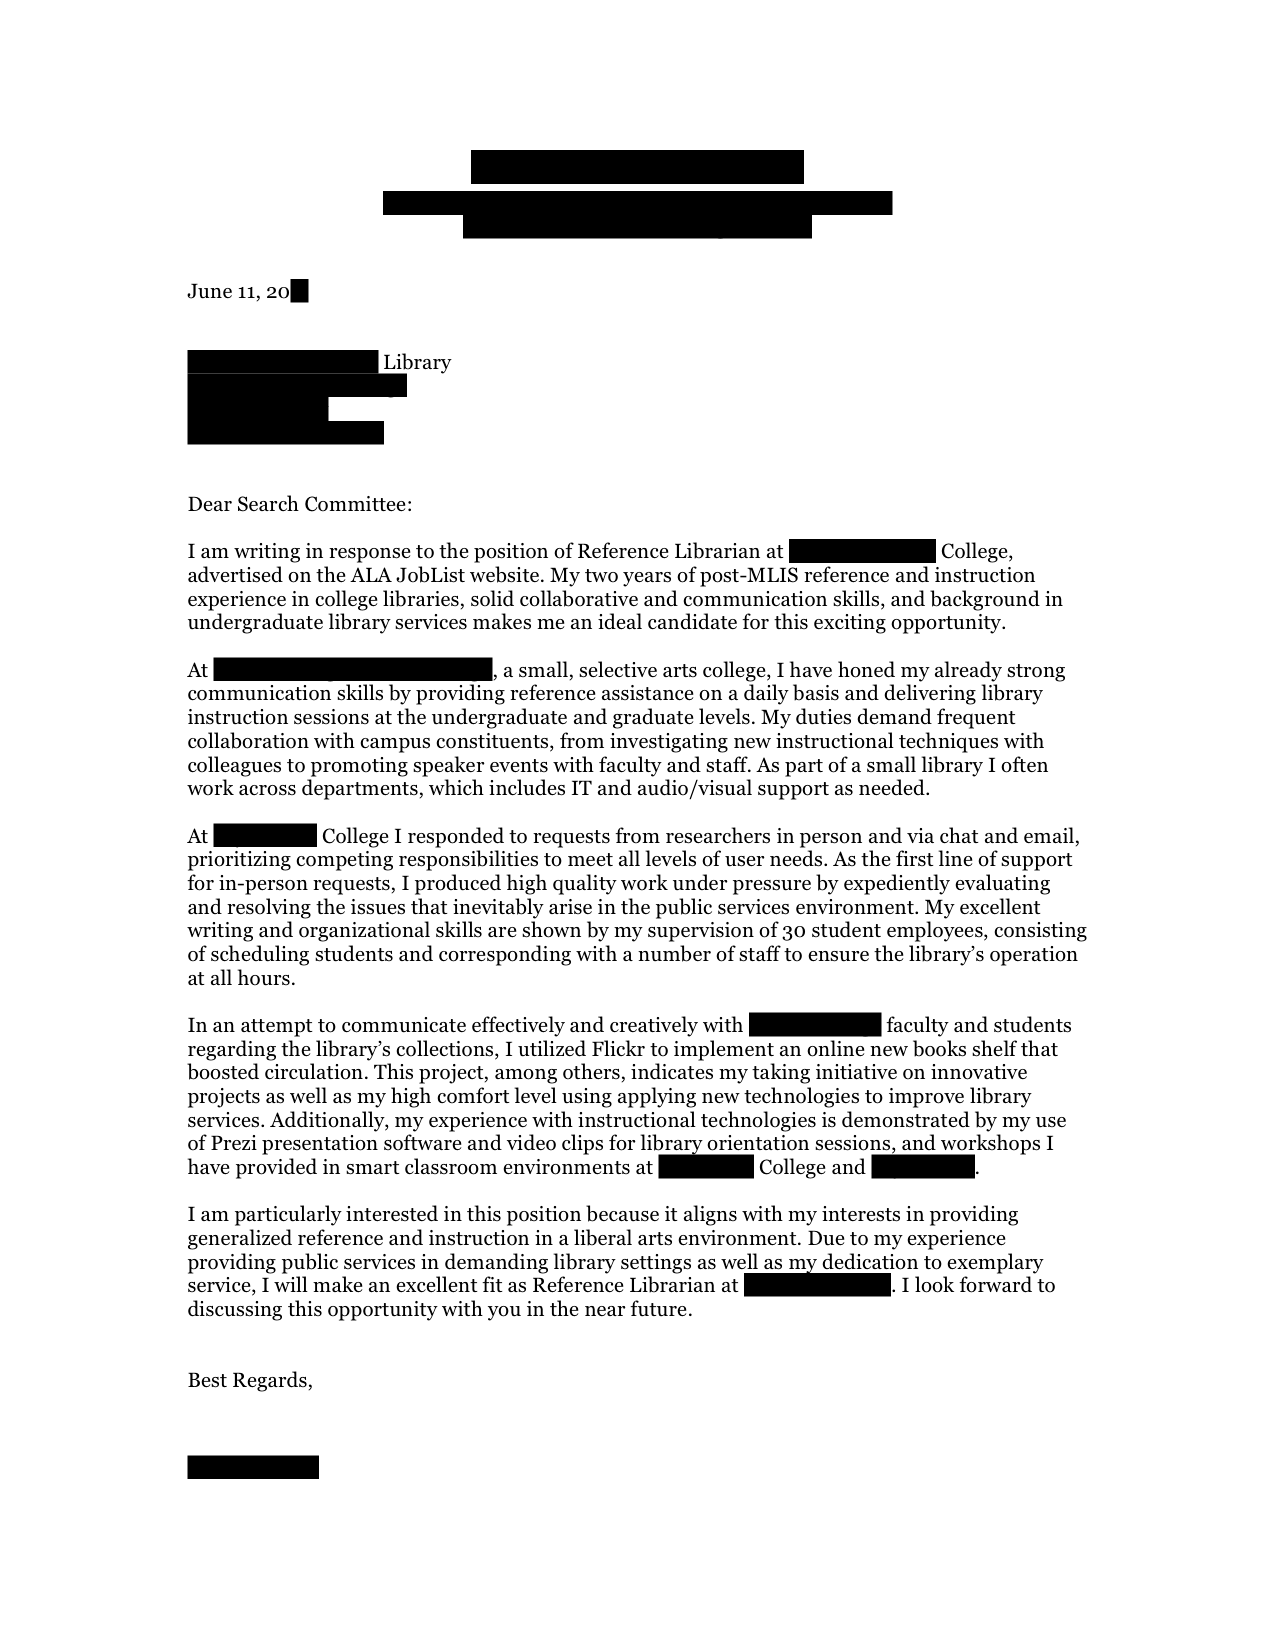 Reference Librarian cover letter  Open Cover Letters